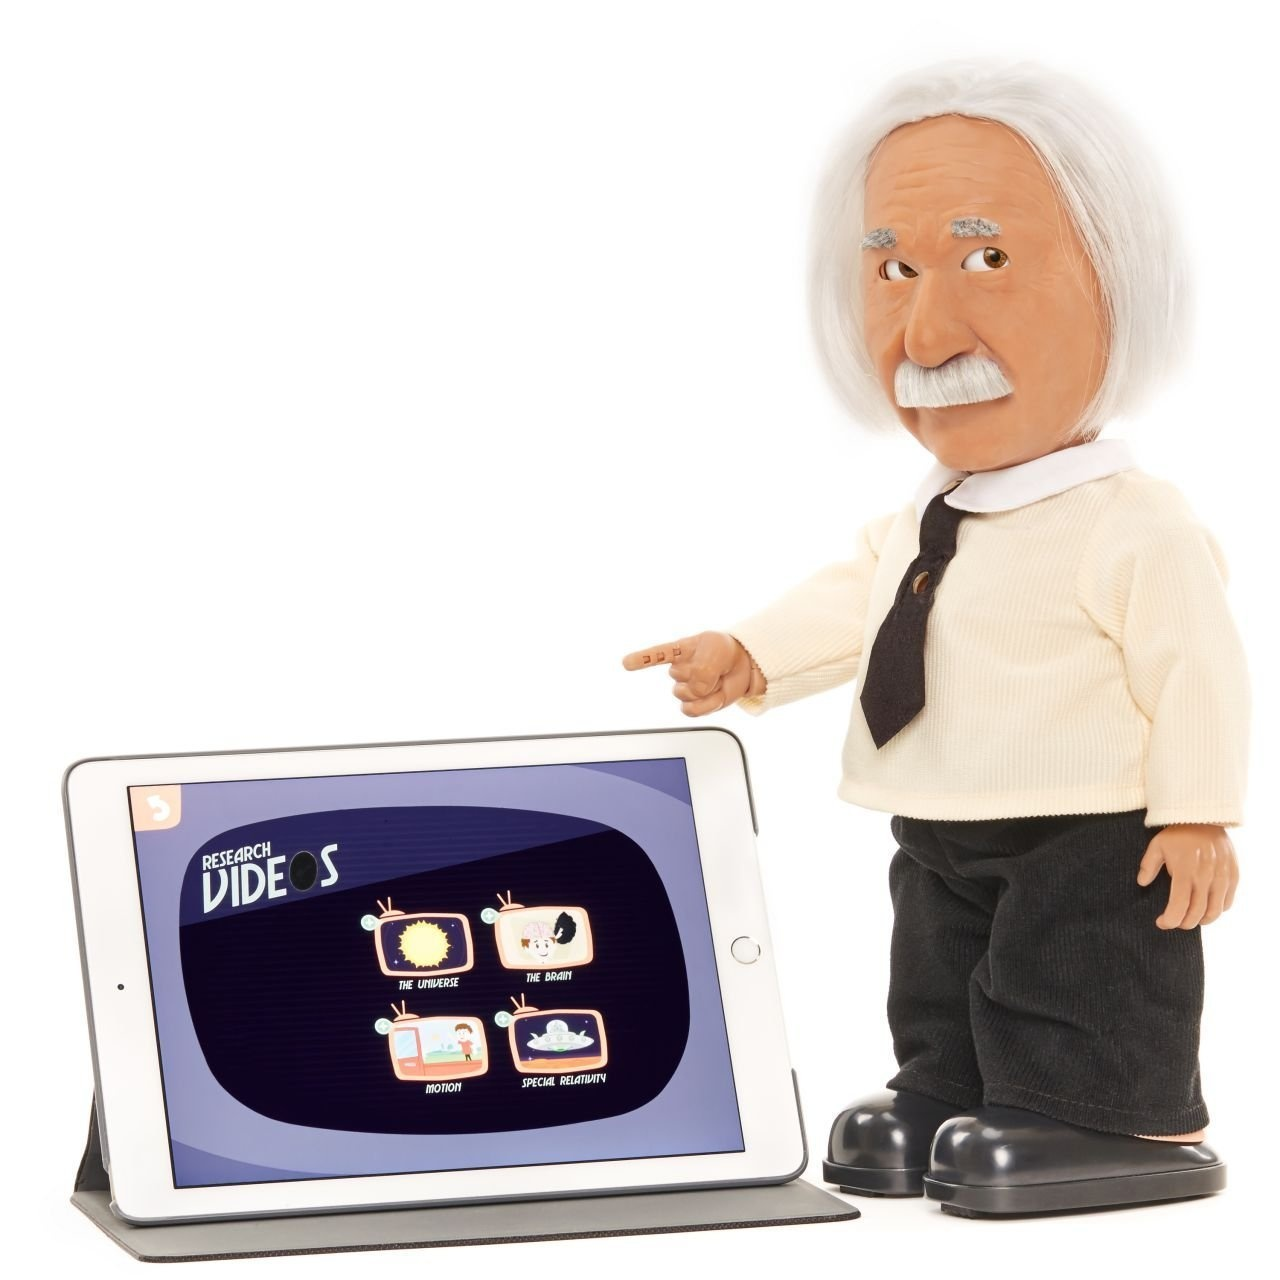 Play Brain Games /& Learn Science from Albert Einstein Character with Realistic Facial Expressions. Walks Connects to WiFi Professor Einstein Robot Talks uses Voice Commands